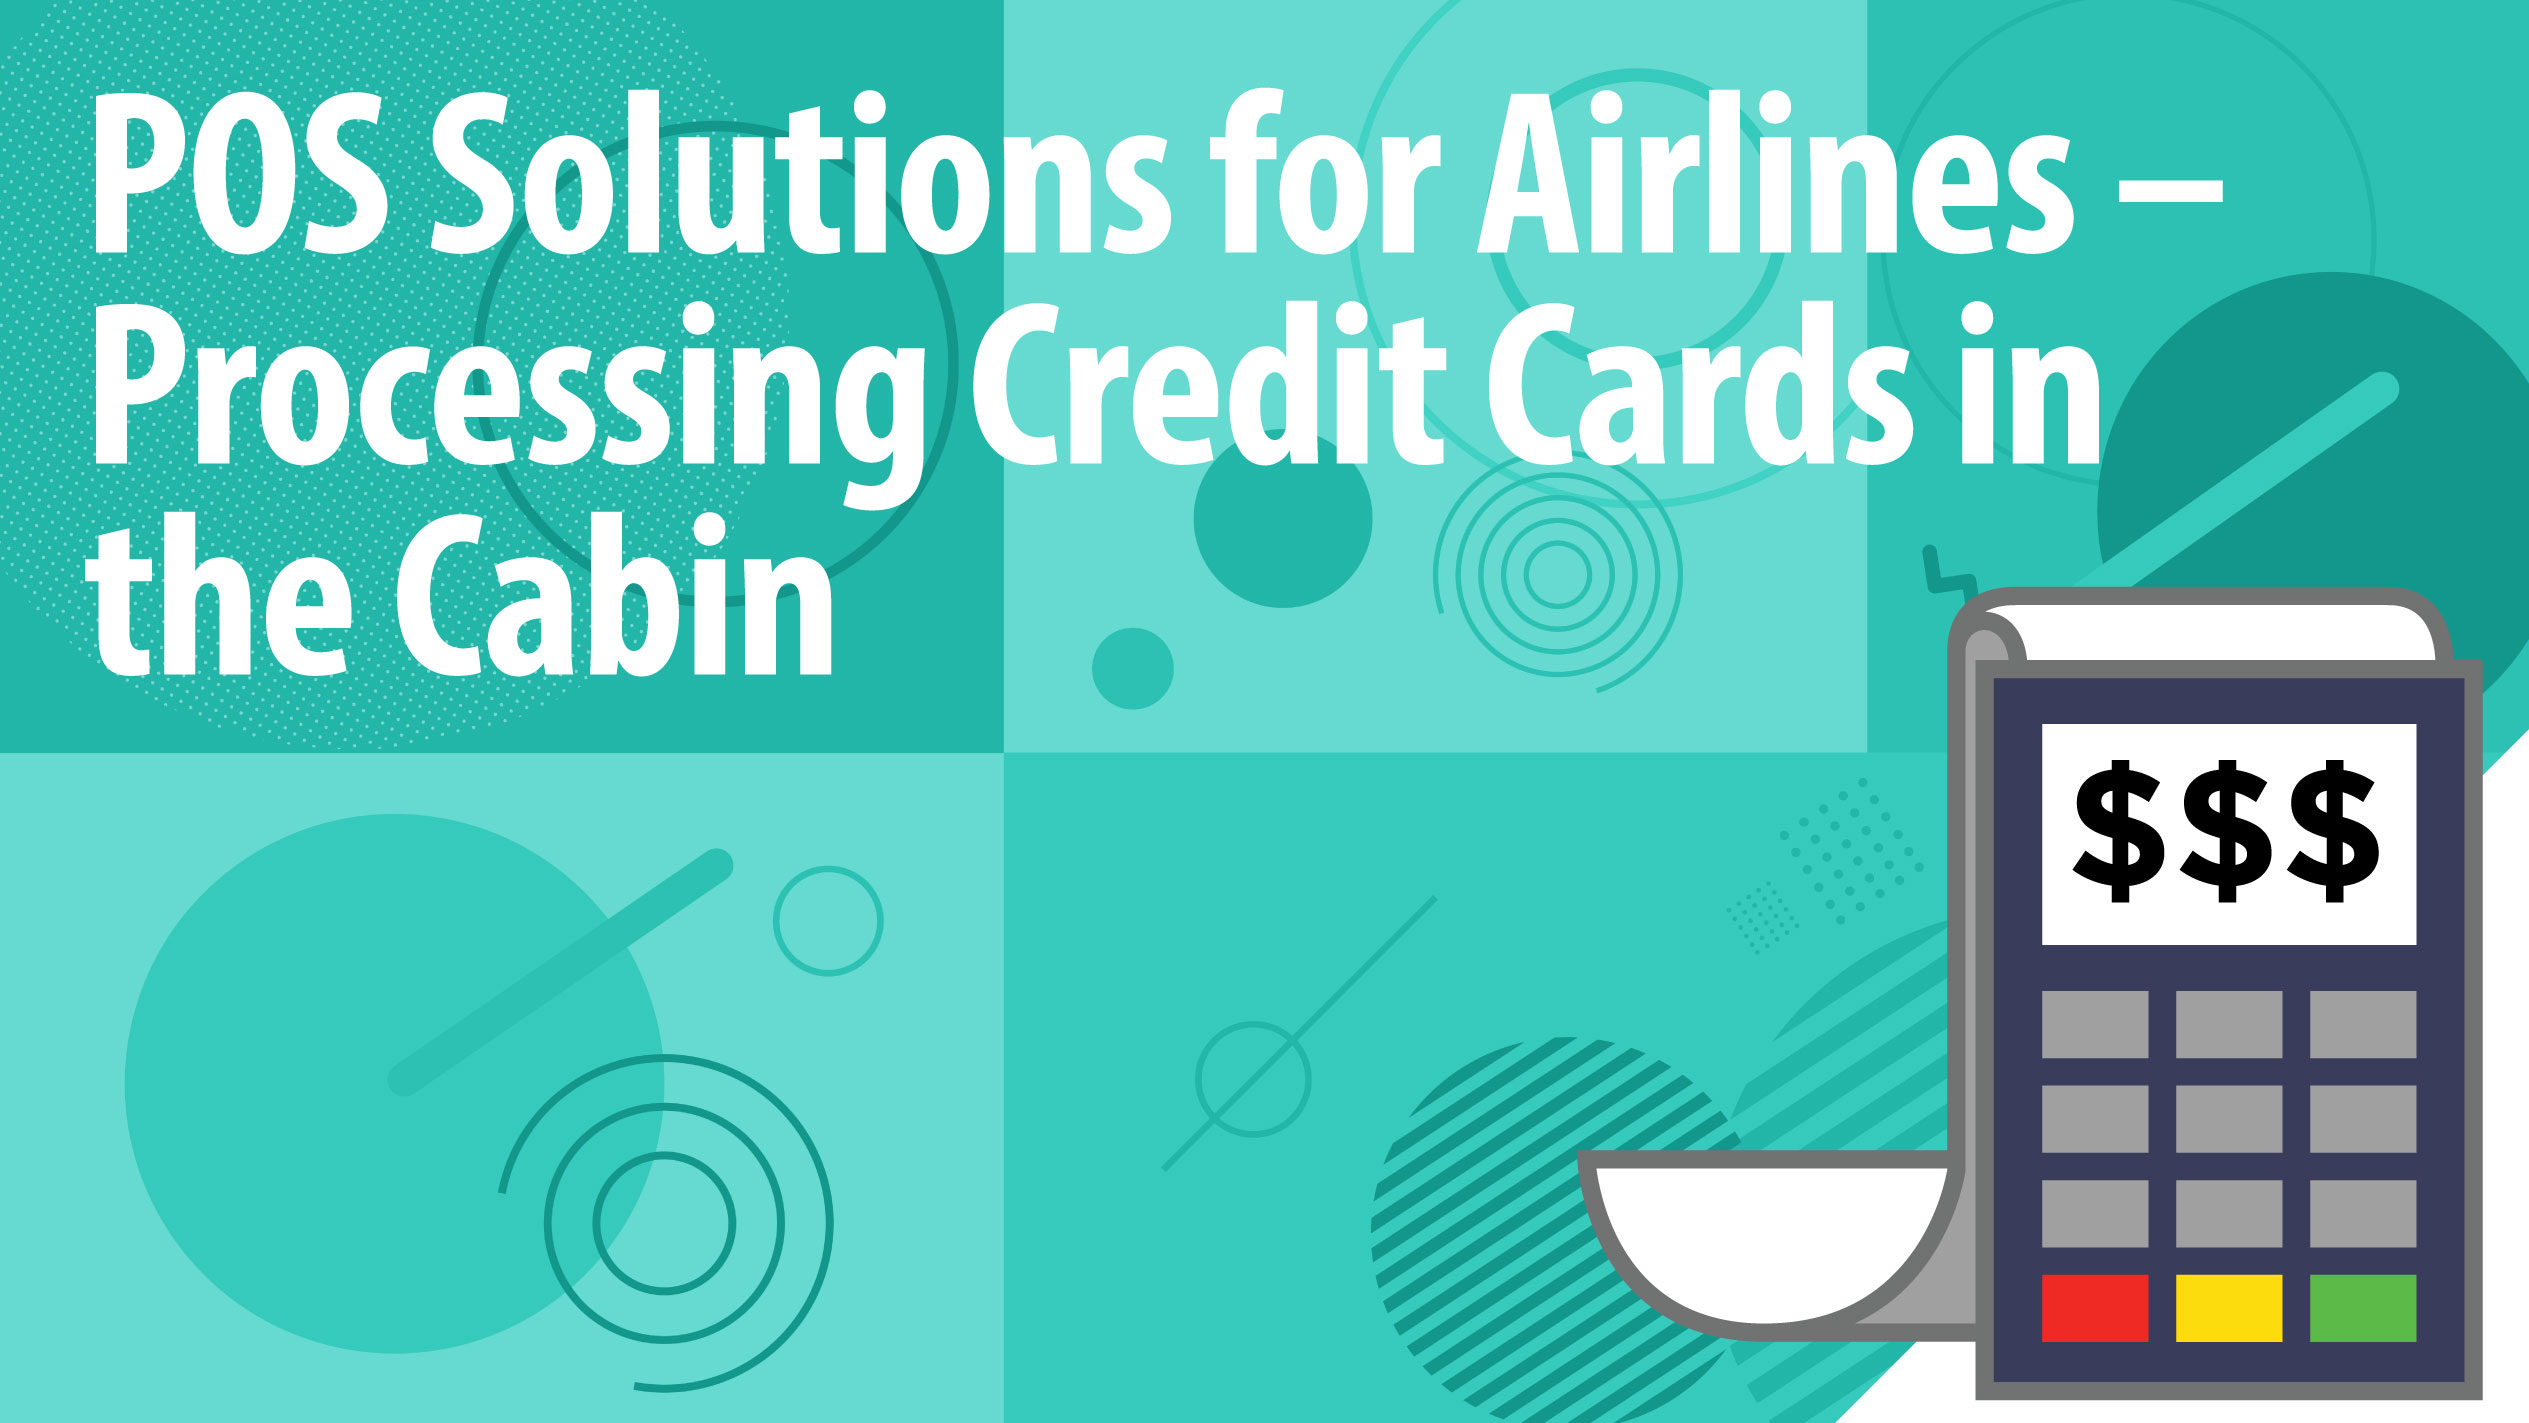 POS Solutions for Airlines – Processing Credit Cards in the Cabin